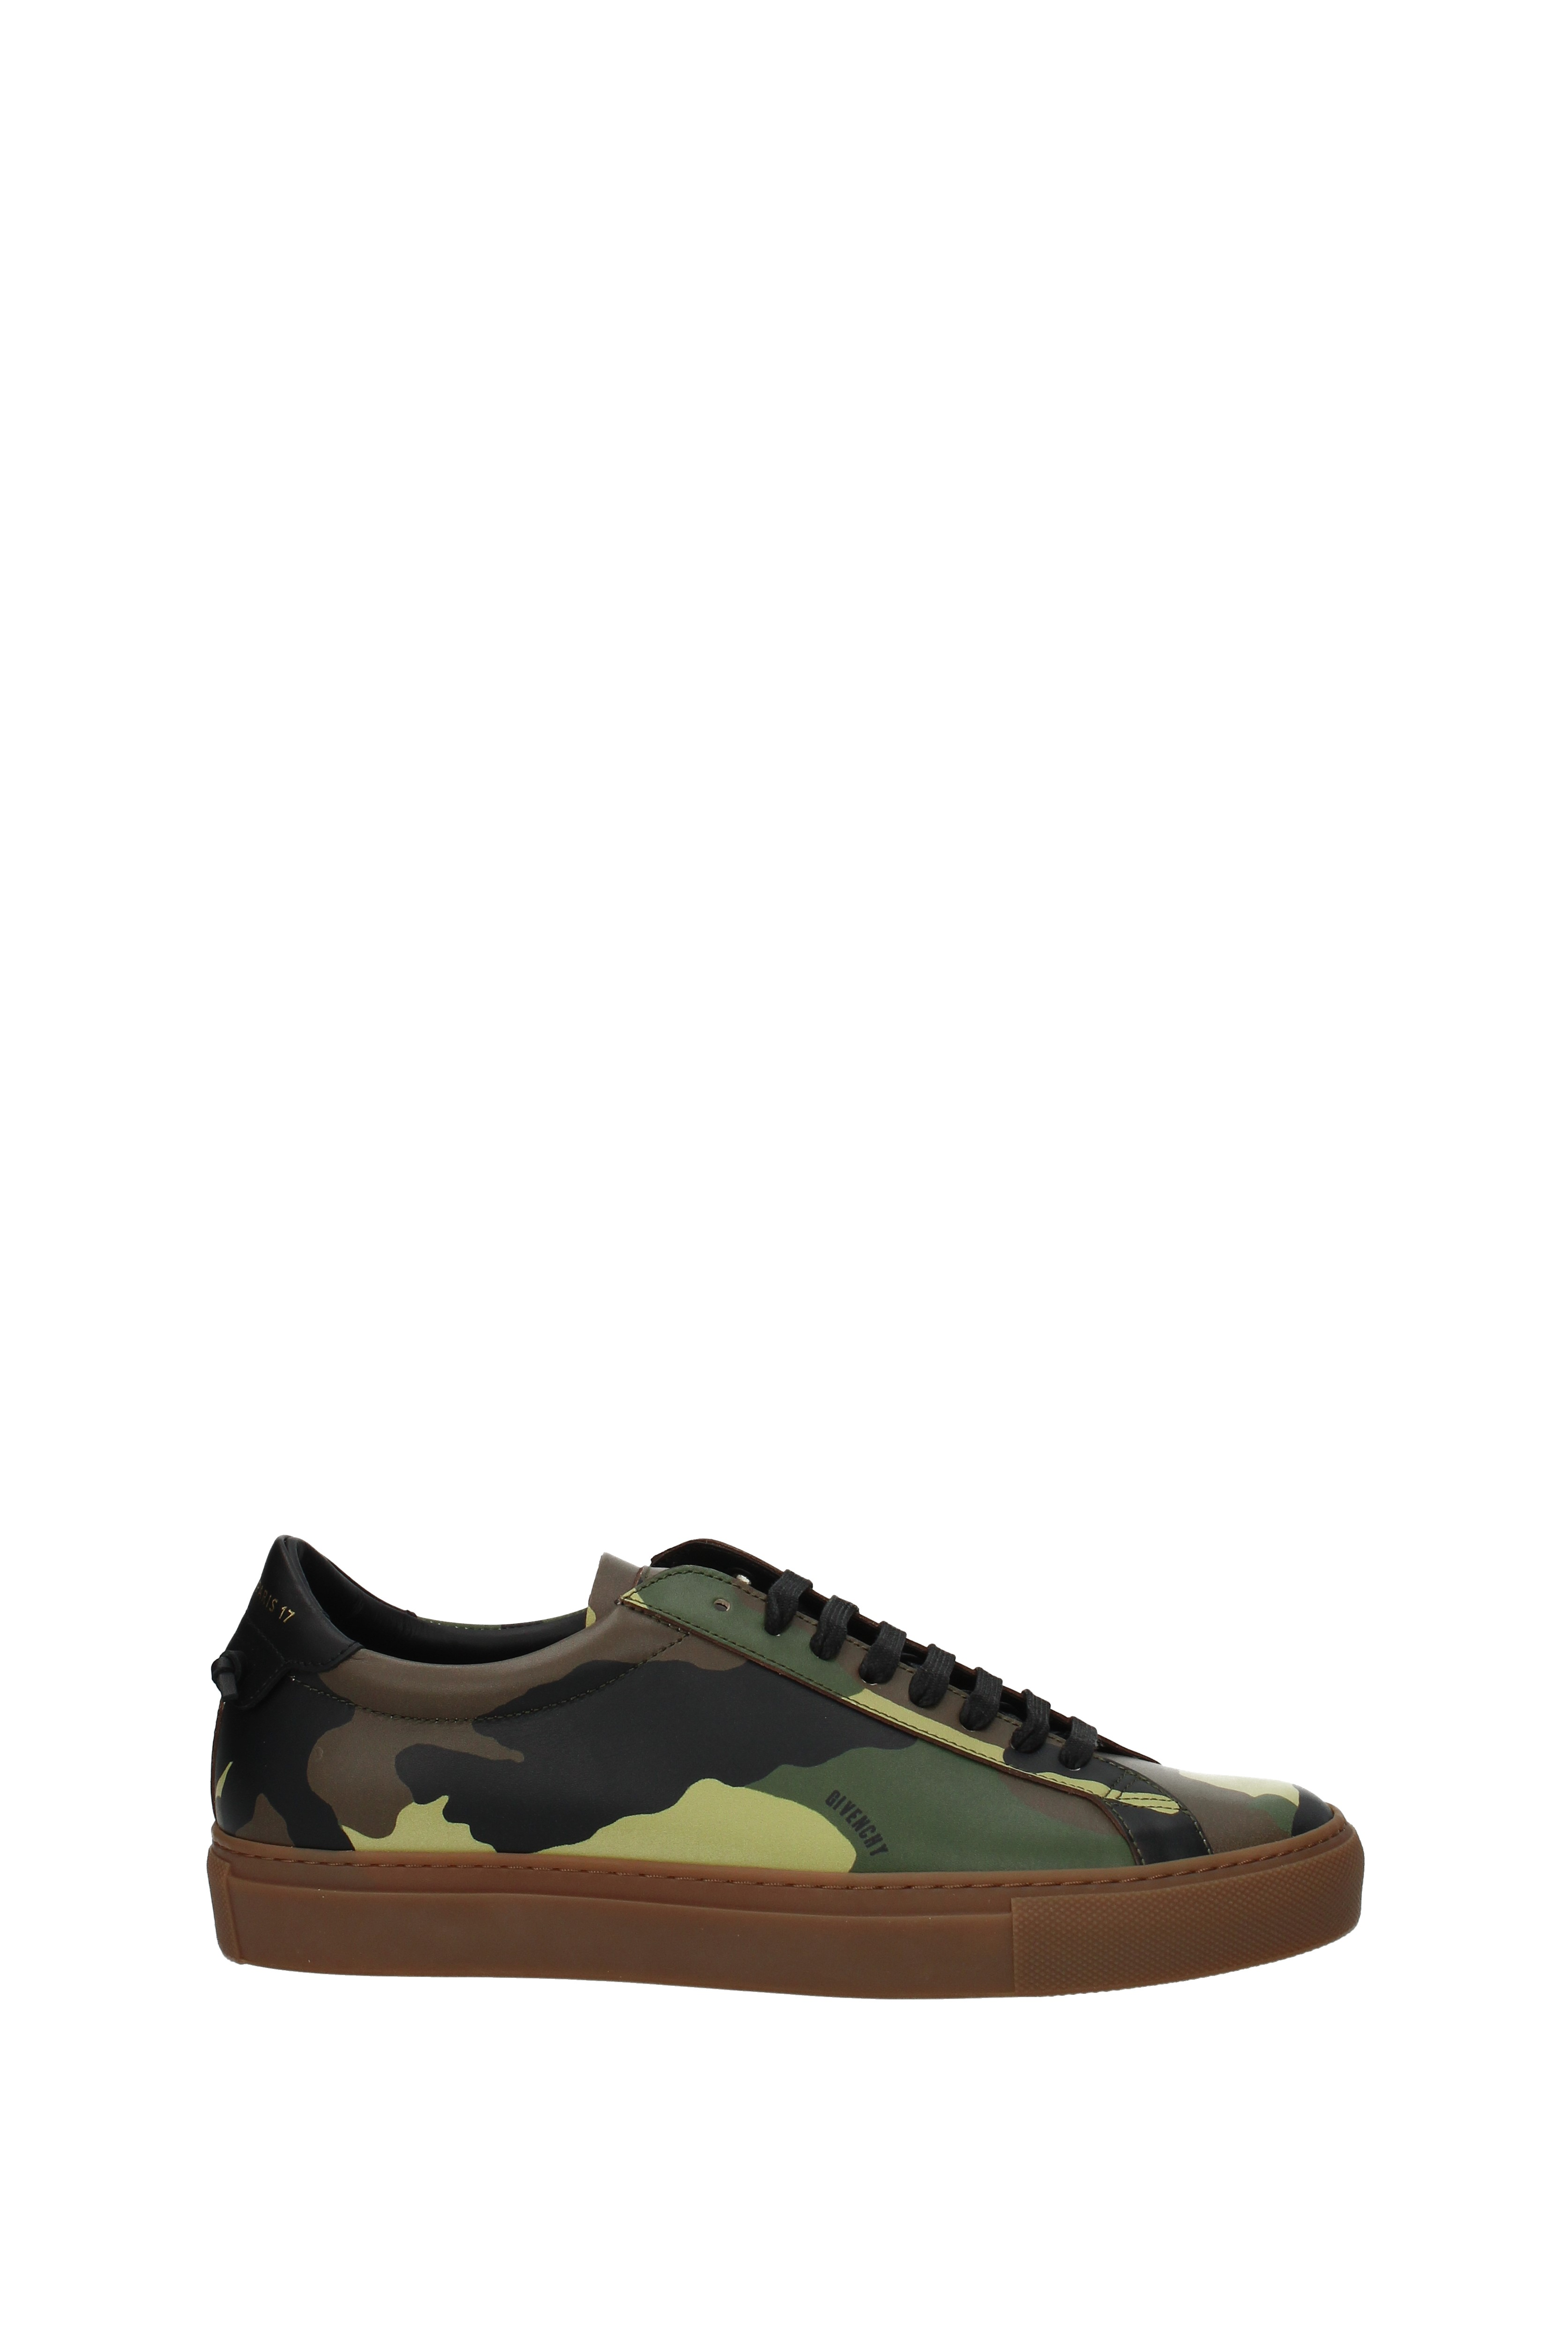 Sneakers Givenchy Givenchy Sneakers Herren - Leder (BM08219822) 678f38